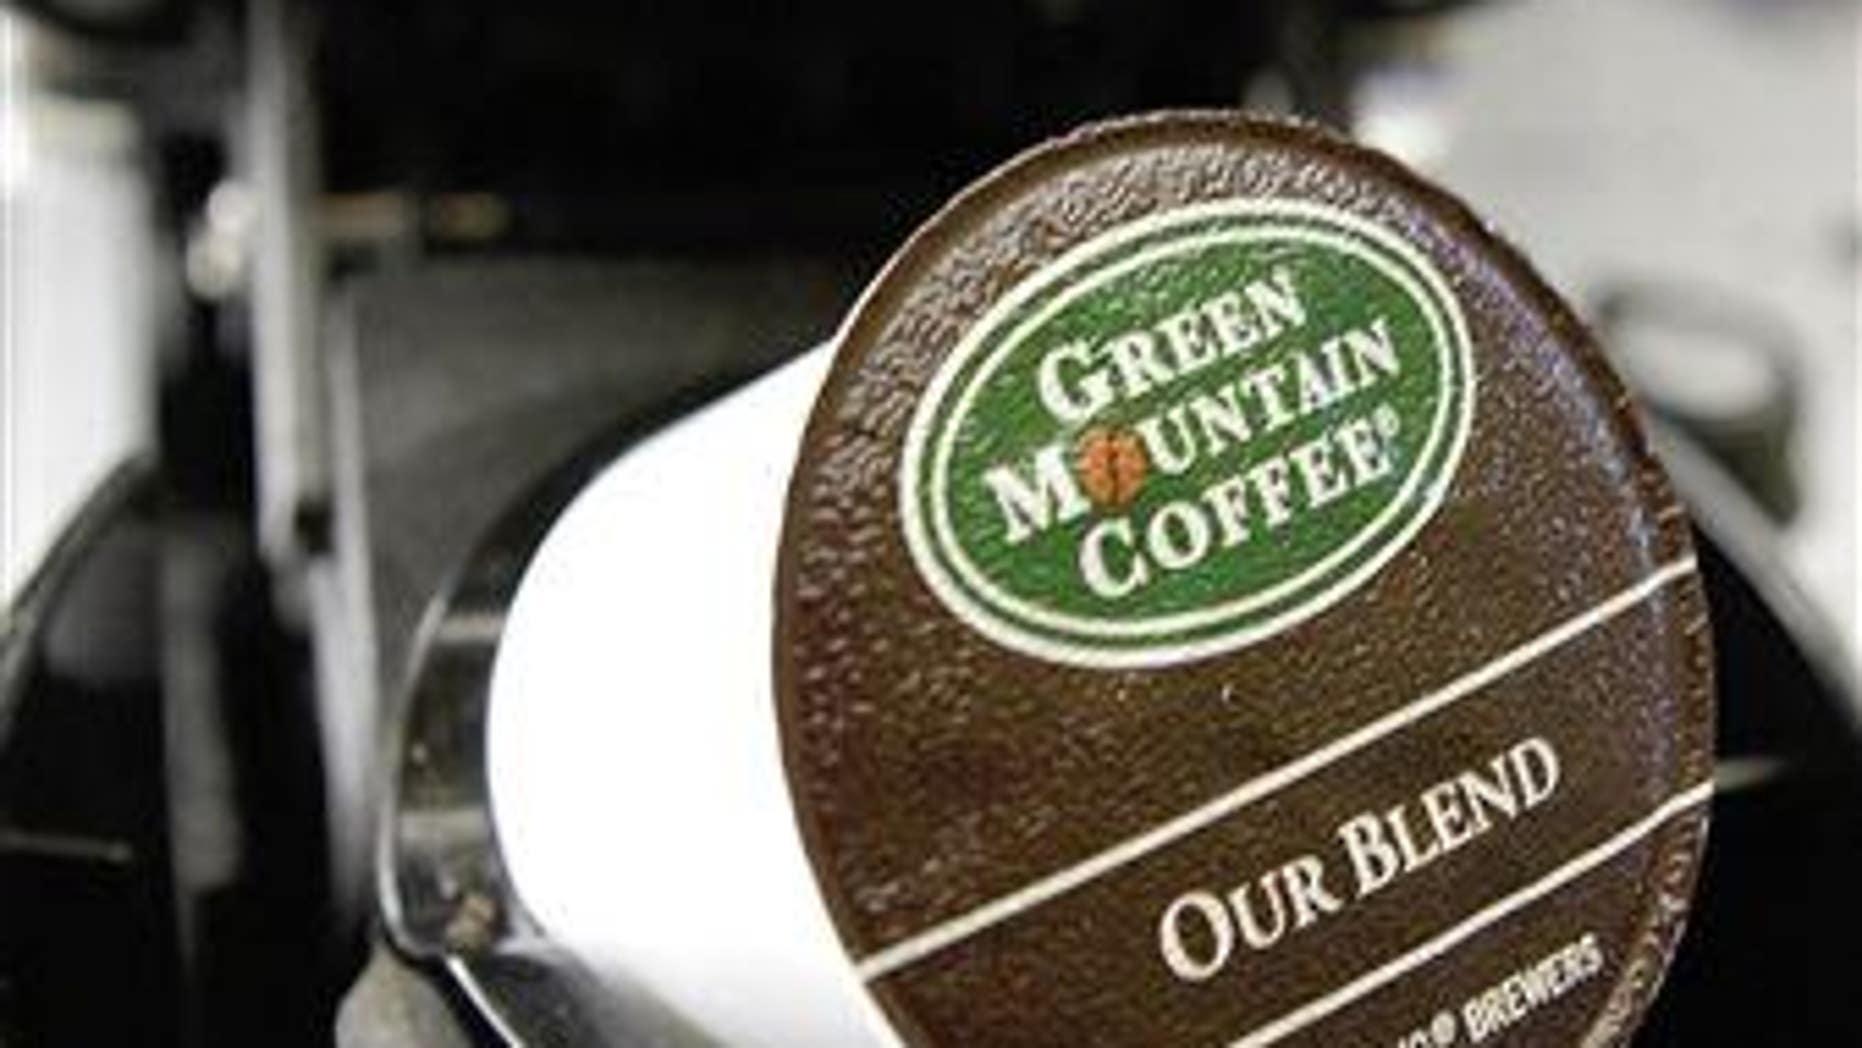 A Green Mountain Coffee single-serving brewing cup.